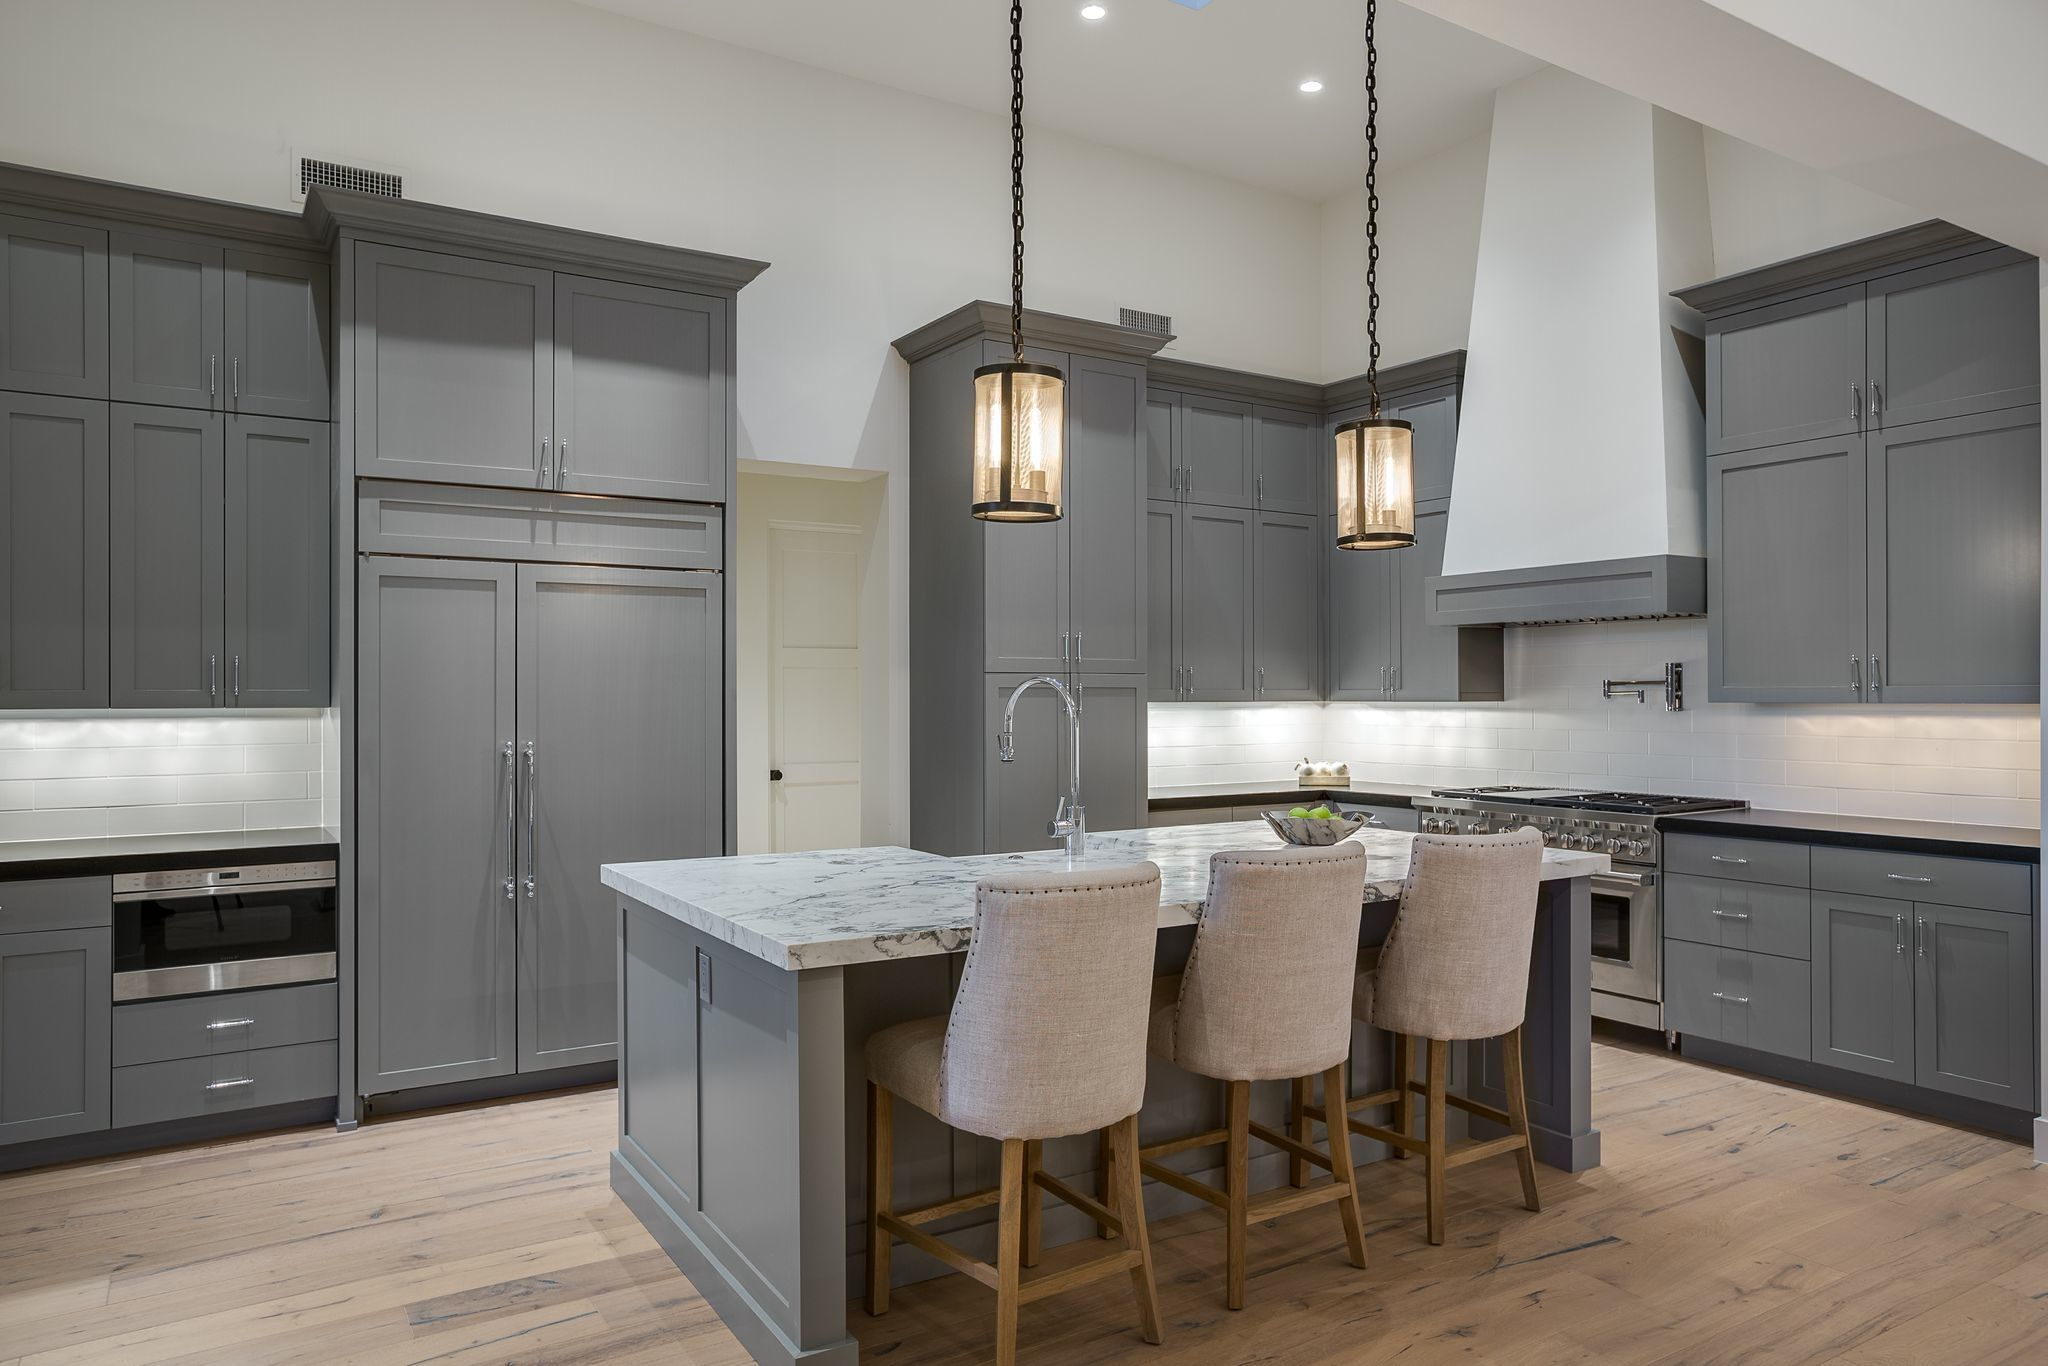 Custom Millwork Kitchen at DH776.  Designed by Michelle D. Young